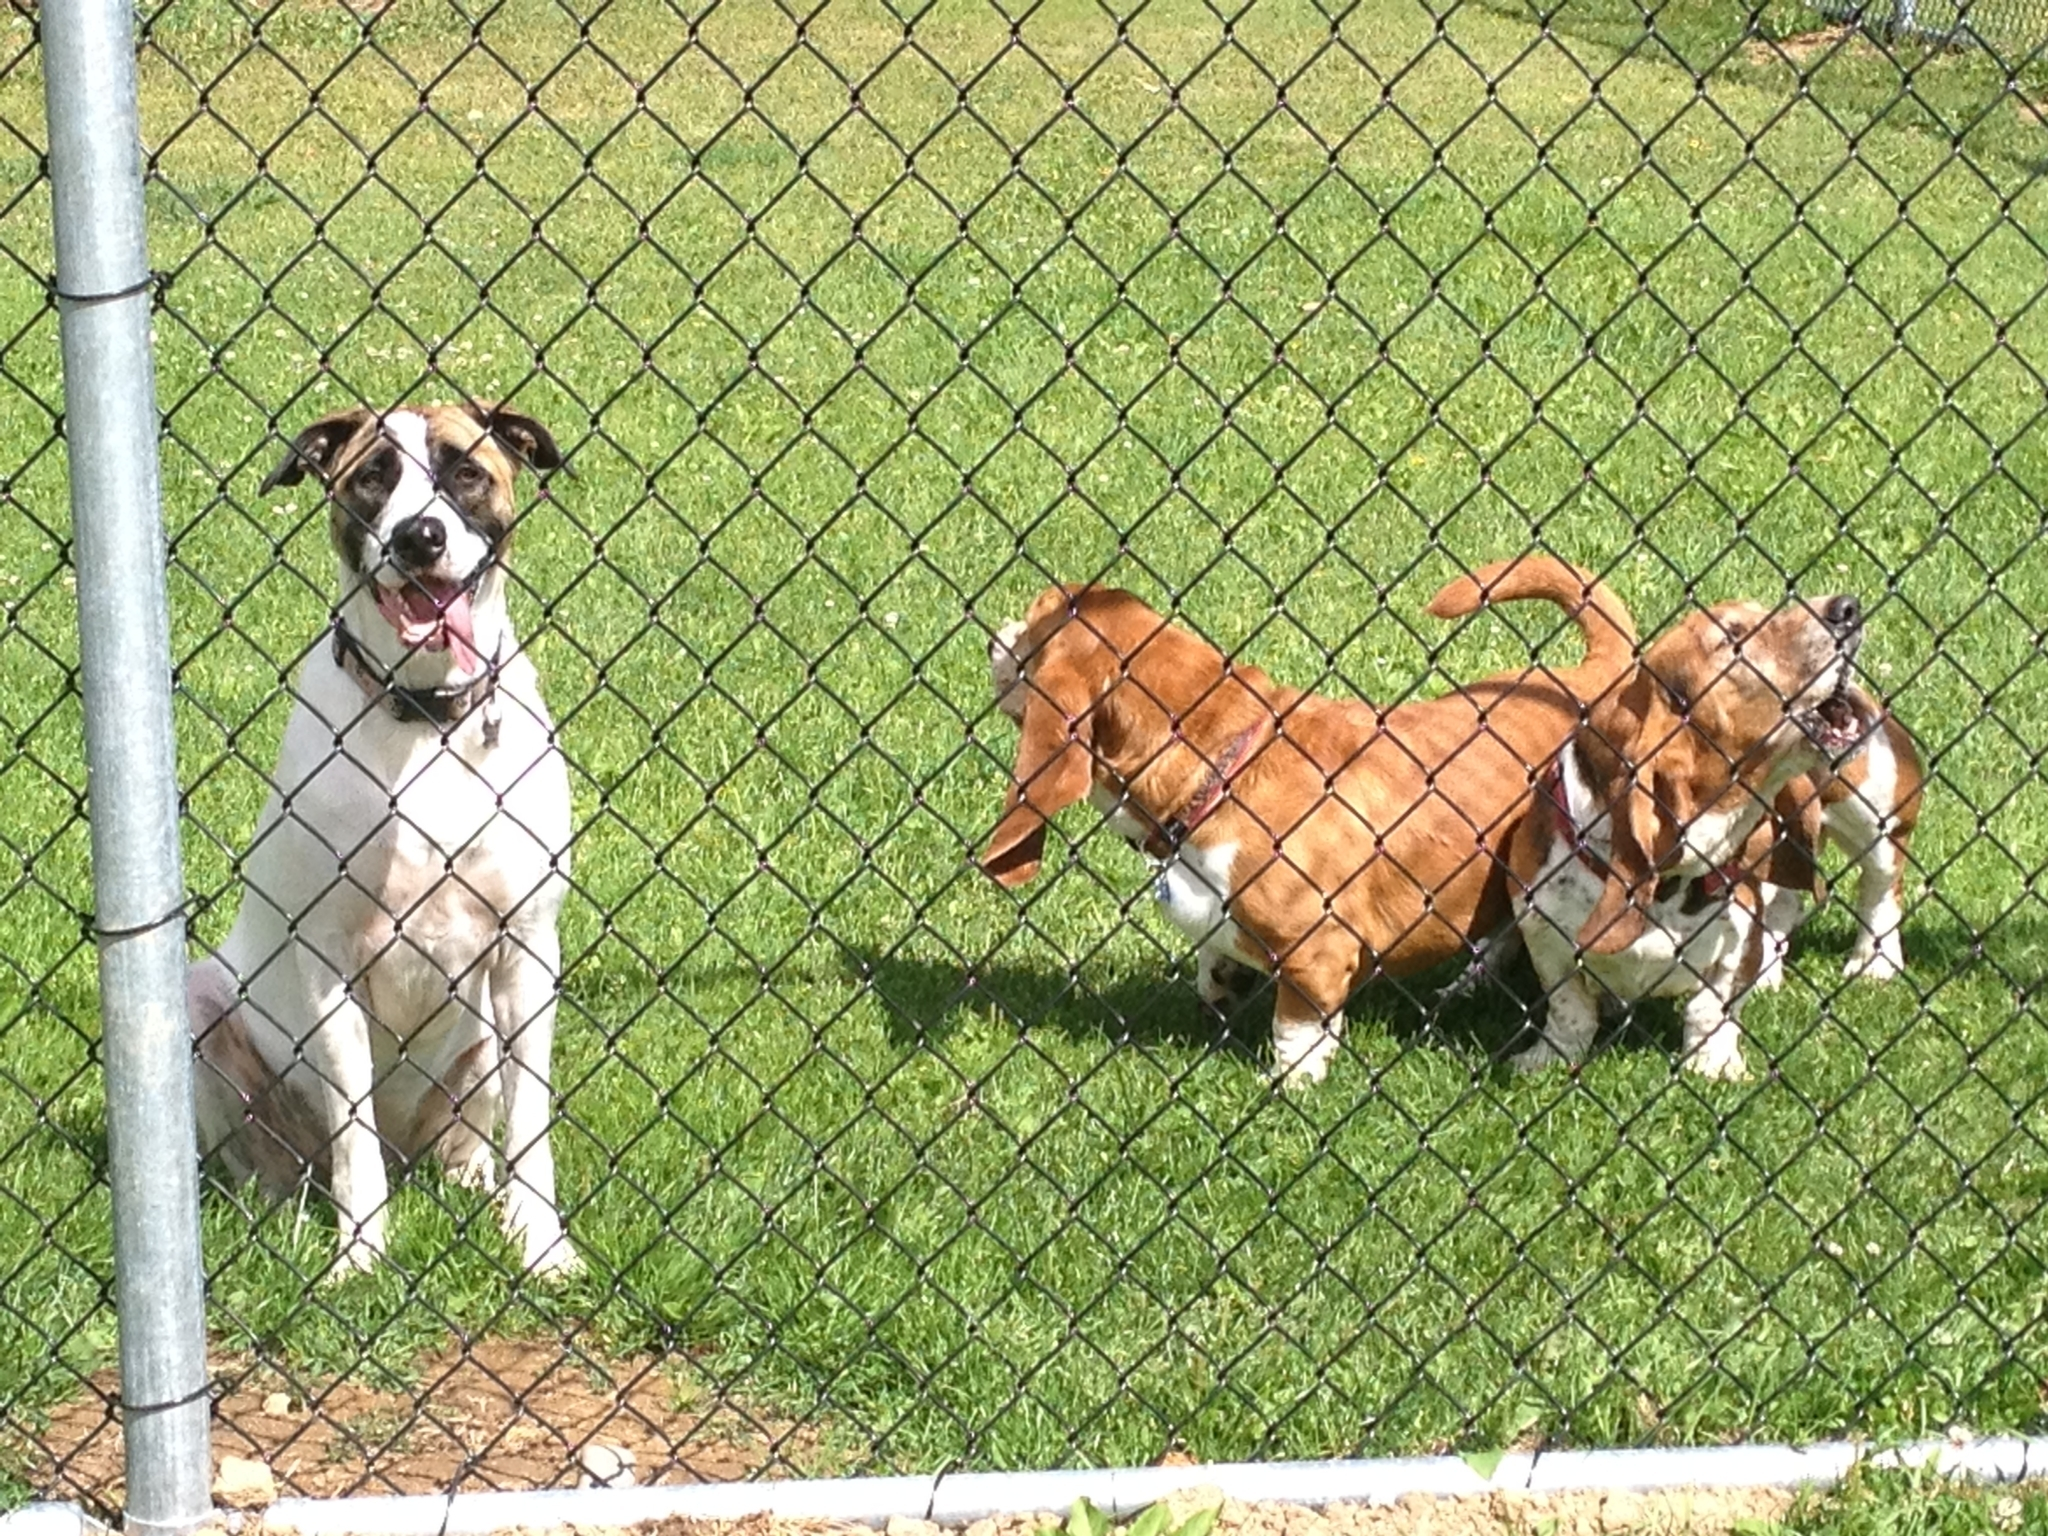 Canadian All Breed Boarding Kennels in Prince George